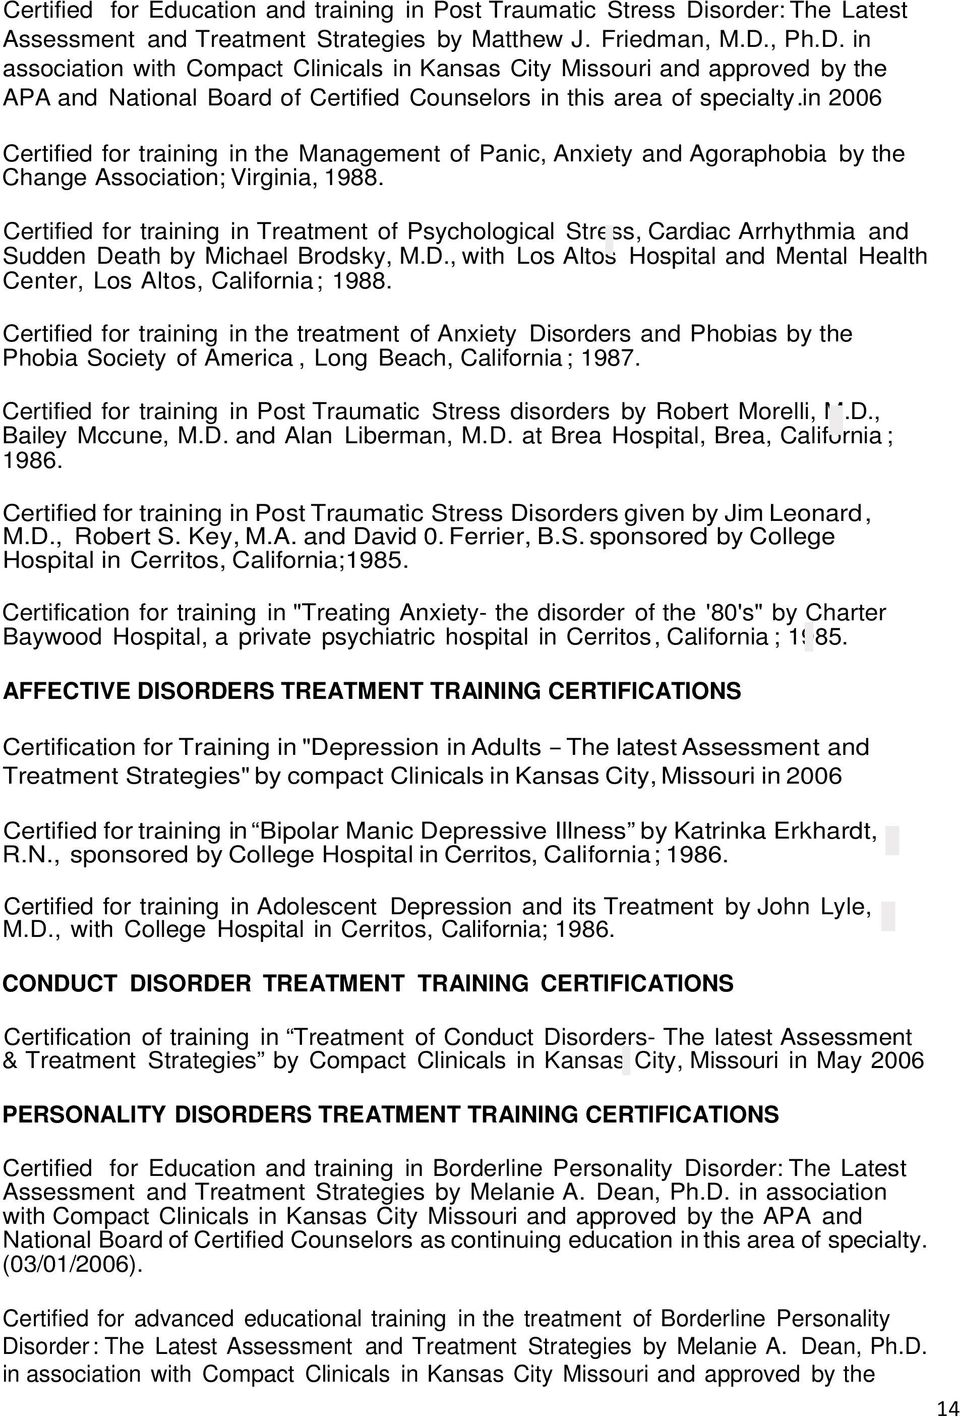 Ph.D. in association with Compact Clinicals in Kansas City Missouri and  approved